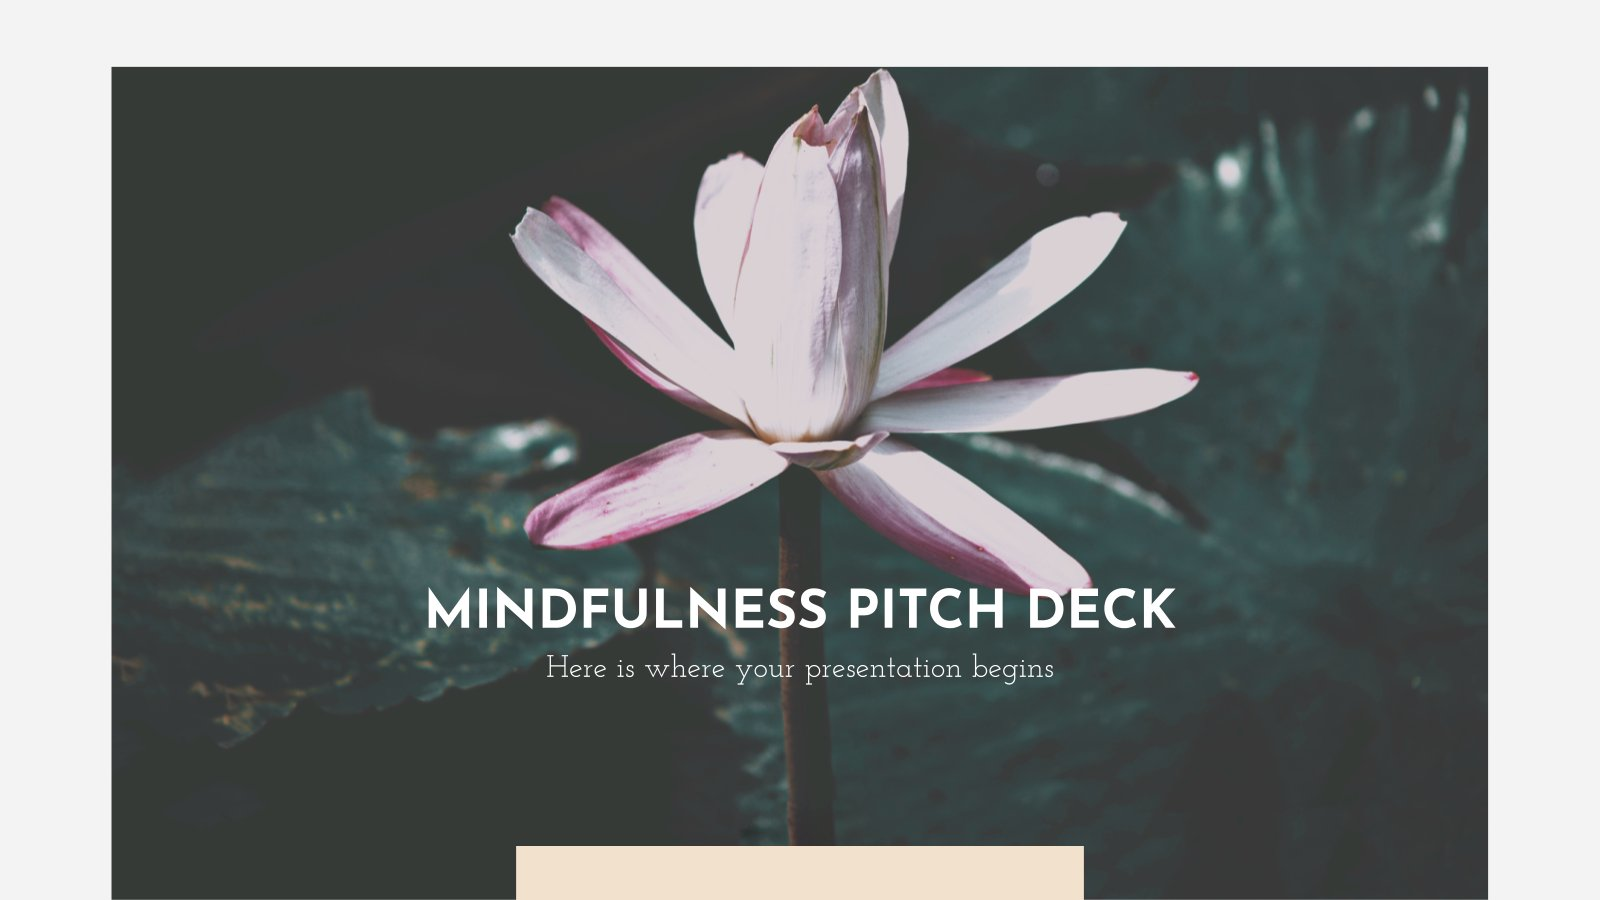 Mindfulness Pitch Deck presentation template